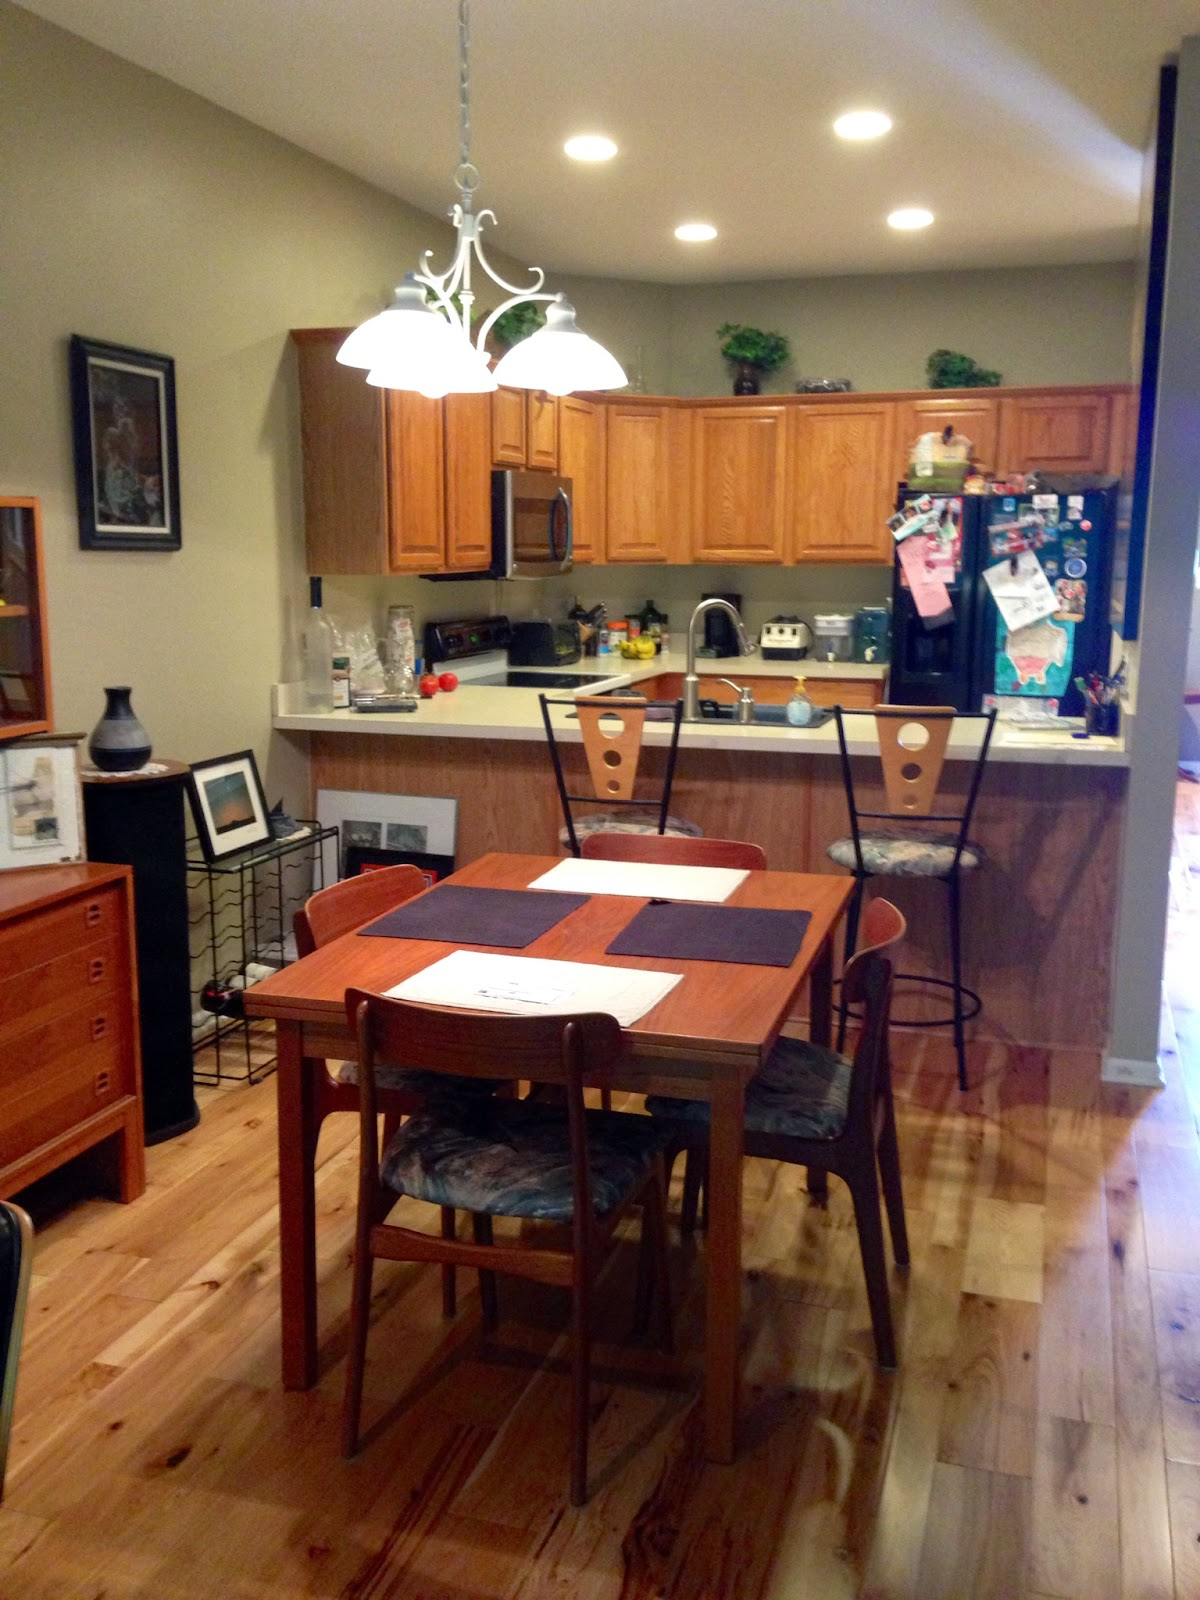 South Barrington Dining Room Project: Danacaseydesign: Latest Project: Kitchen And Dining Room